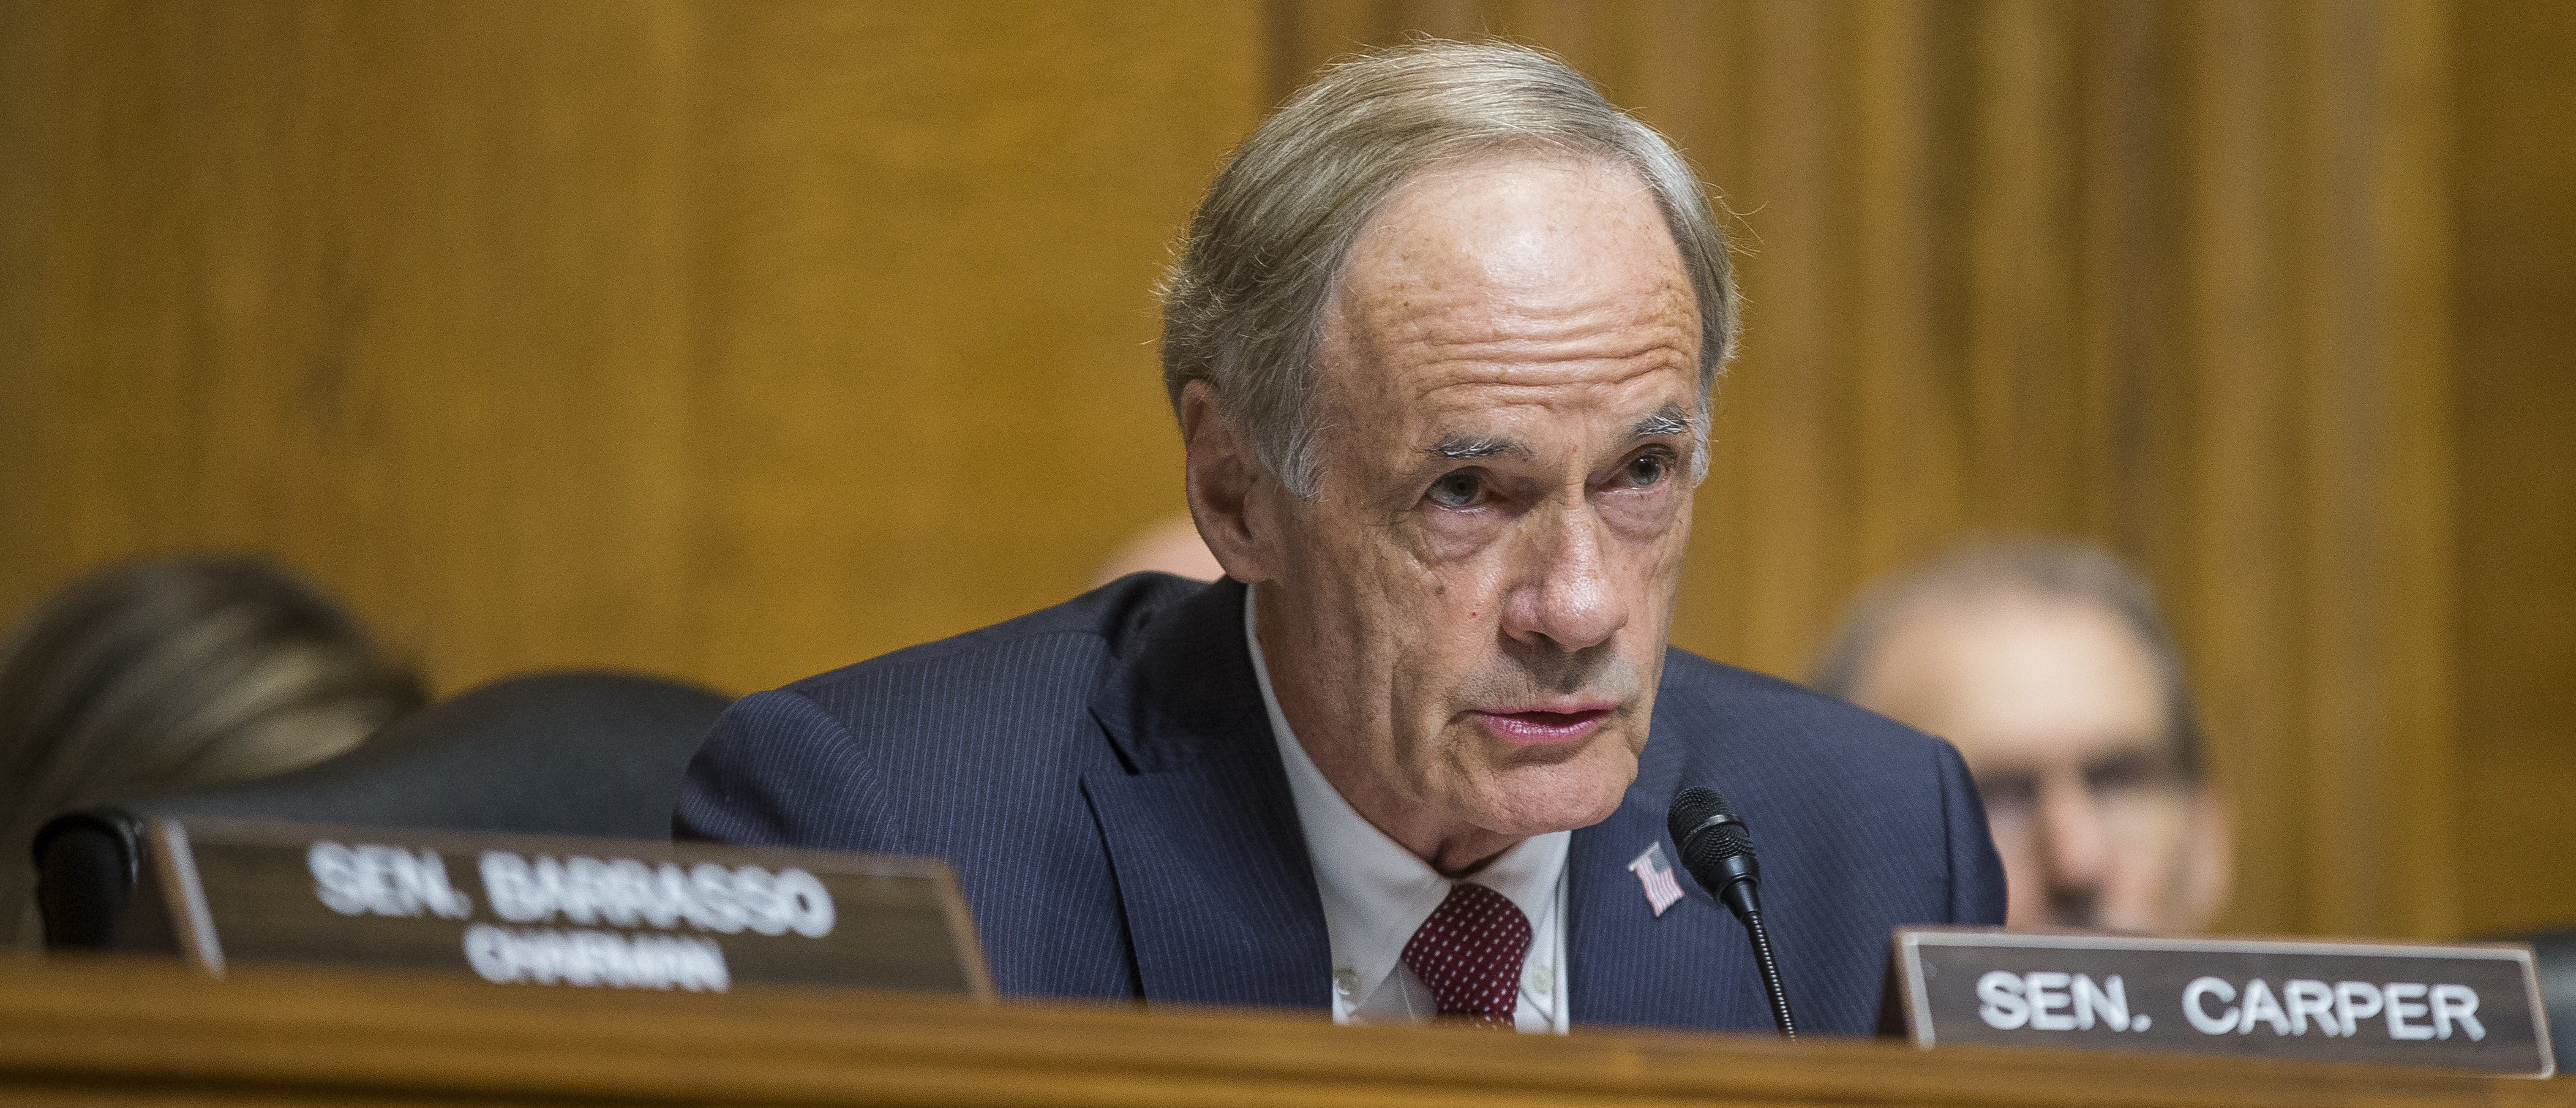 Senate Environment and Public Works Committee Ranking Member Sen. Tom Carper is pictured. (Zach Gibson/Getty Images)